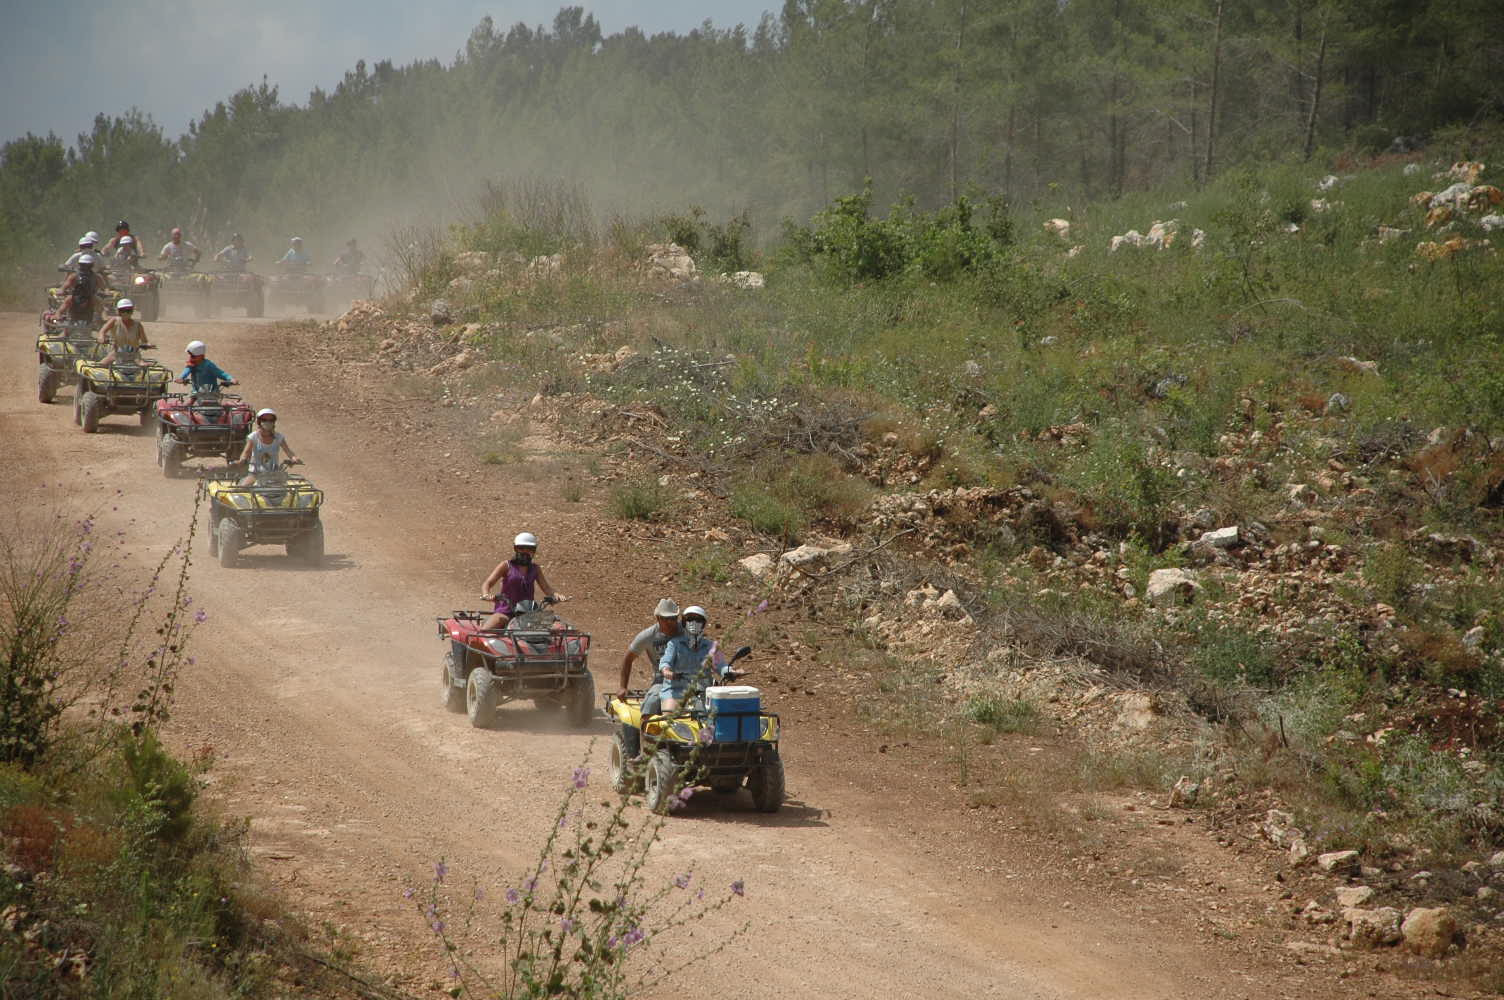 Antalya Quad Safari Turu